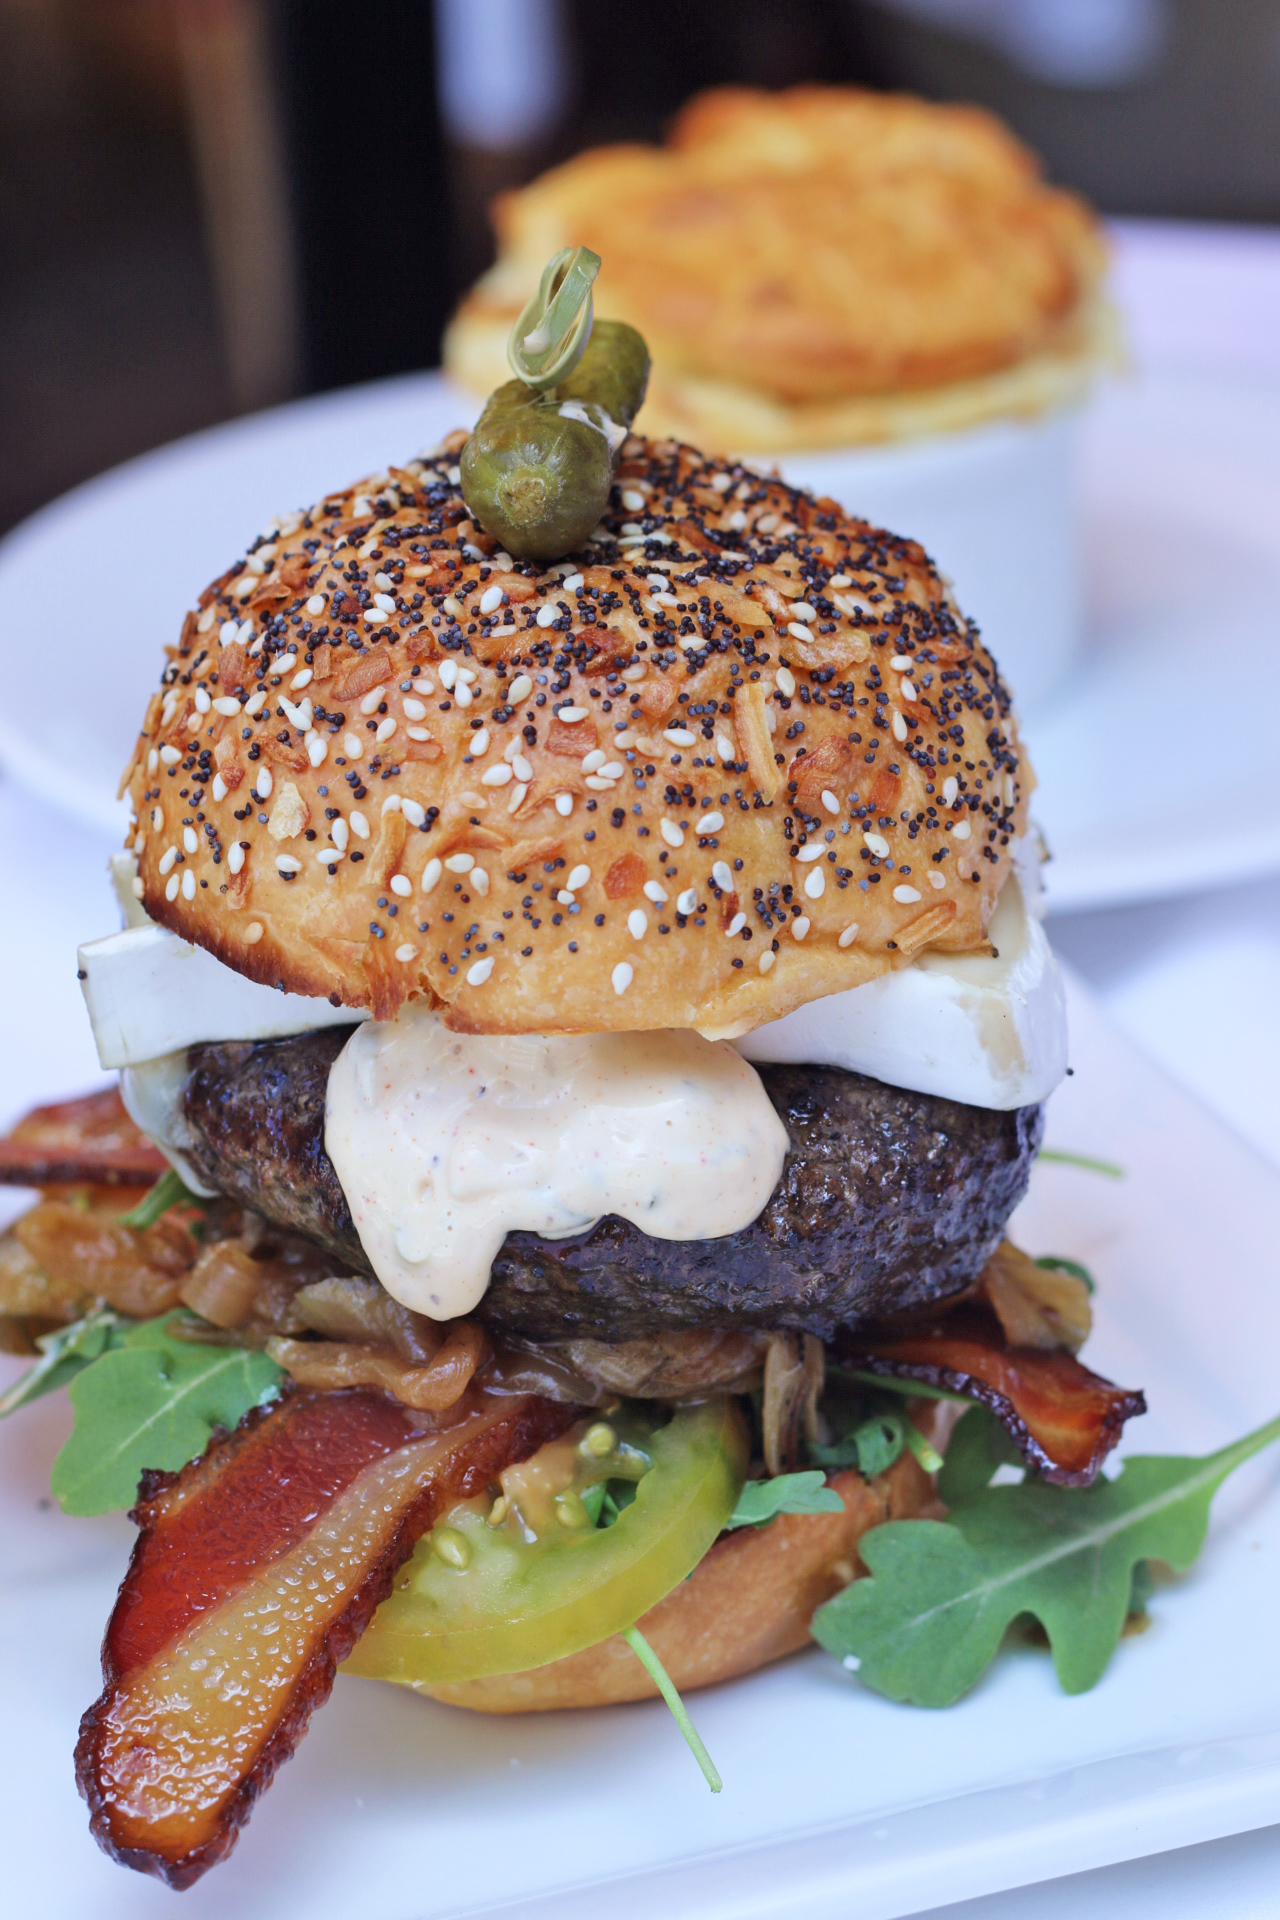 Best Burgers in Coral Gables: The Burger from The Local Craft Food & Drink restaurant on Giralda Ave - Miami, Florida